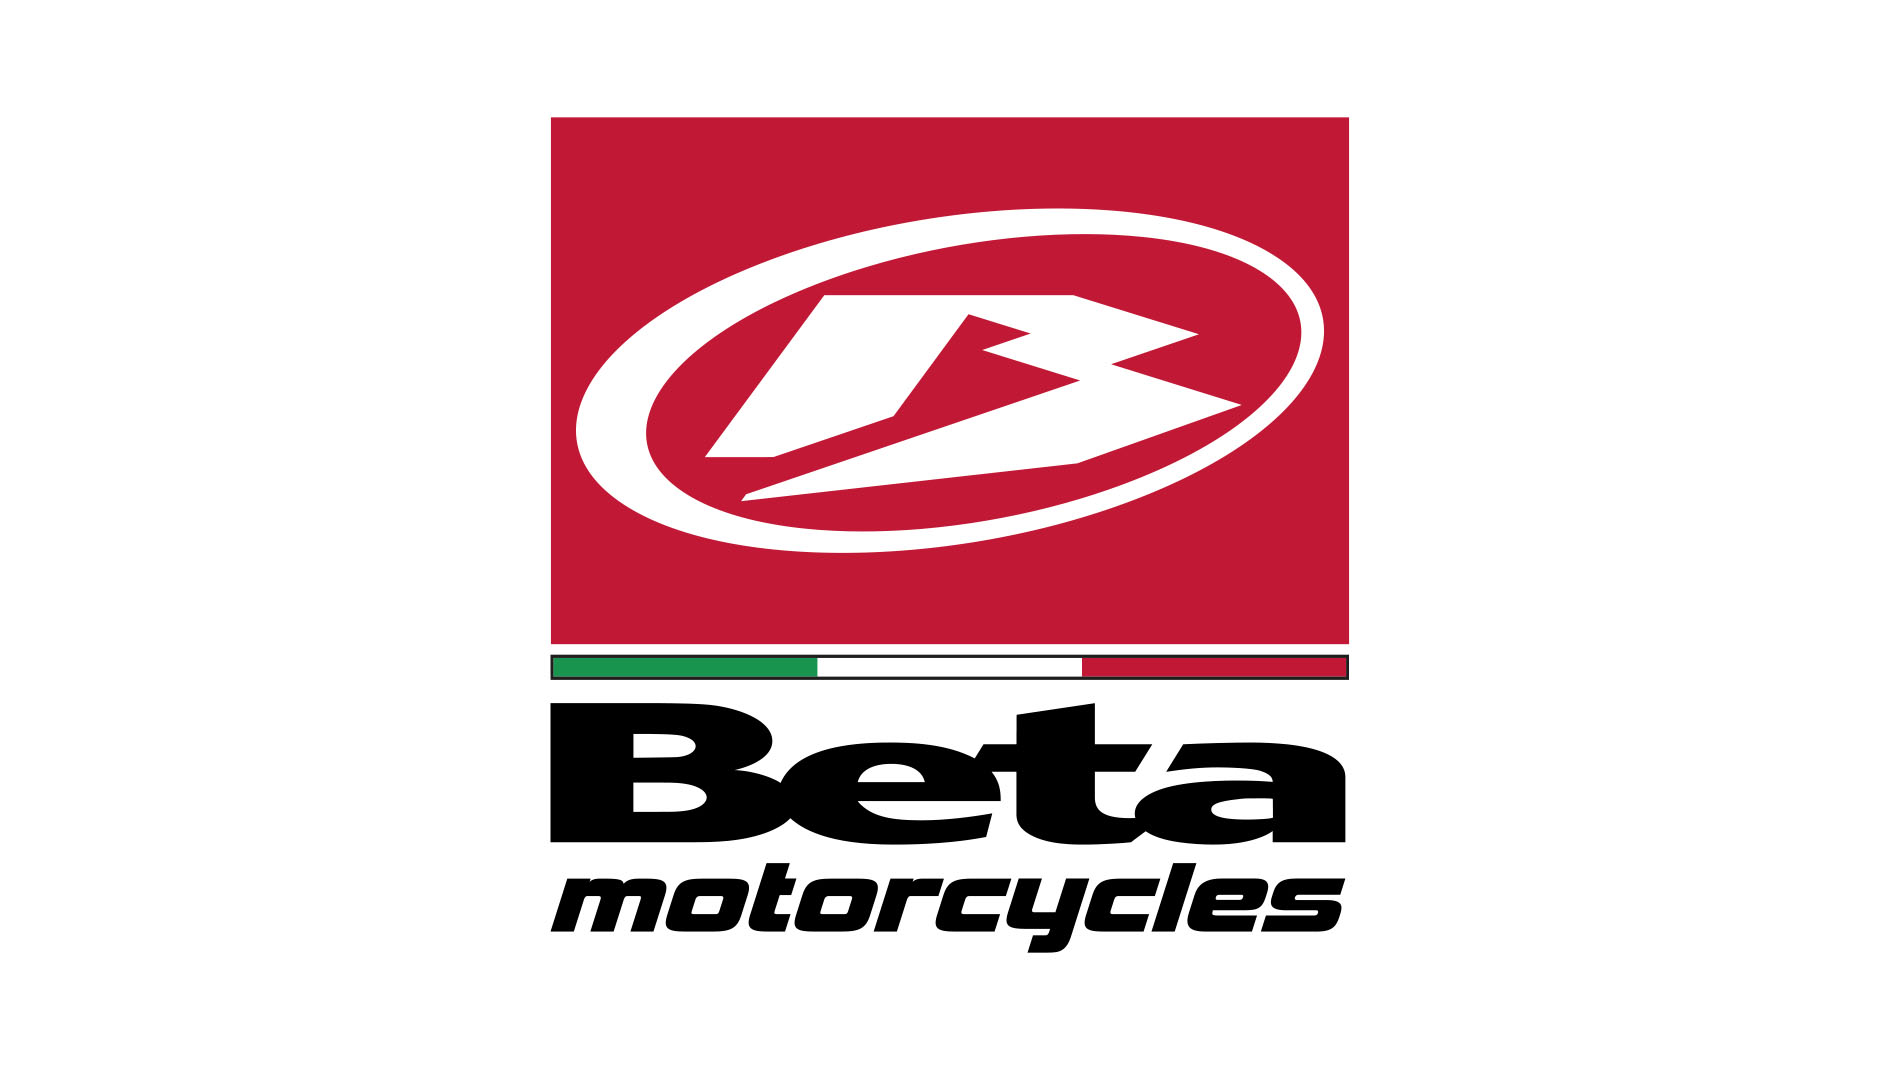 Beta motorcycle